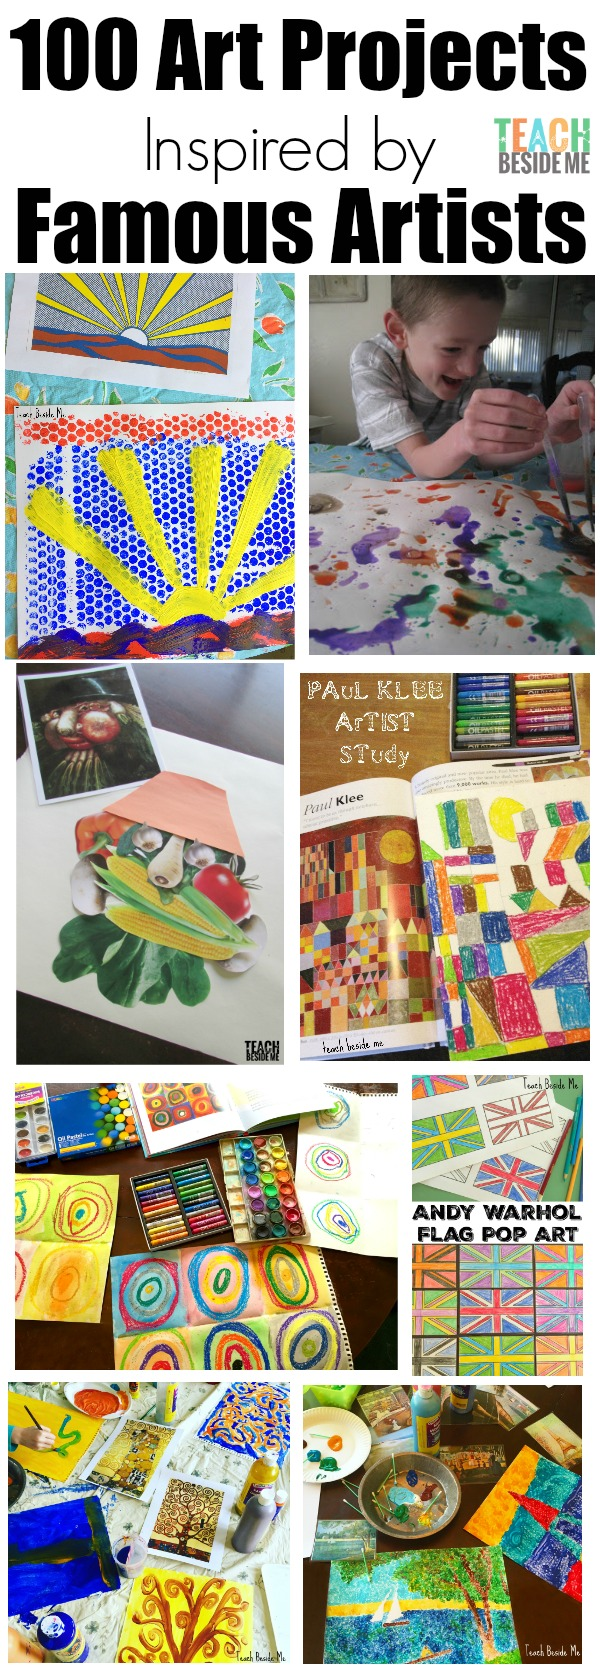 100 fine art projects for kids inspired by famous artists